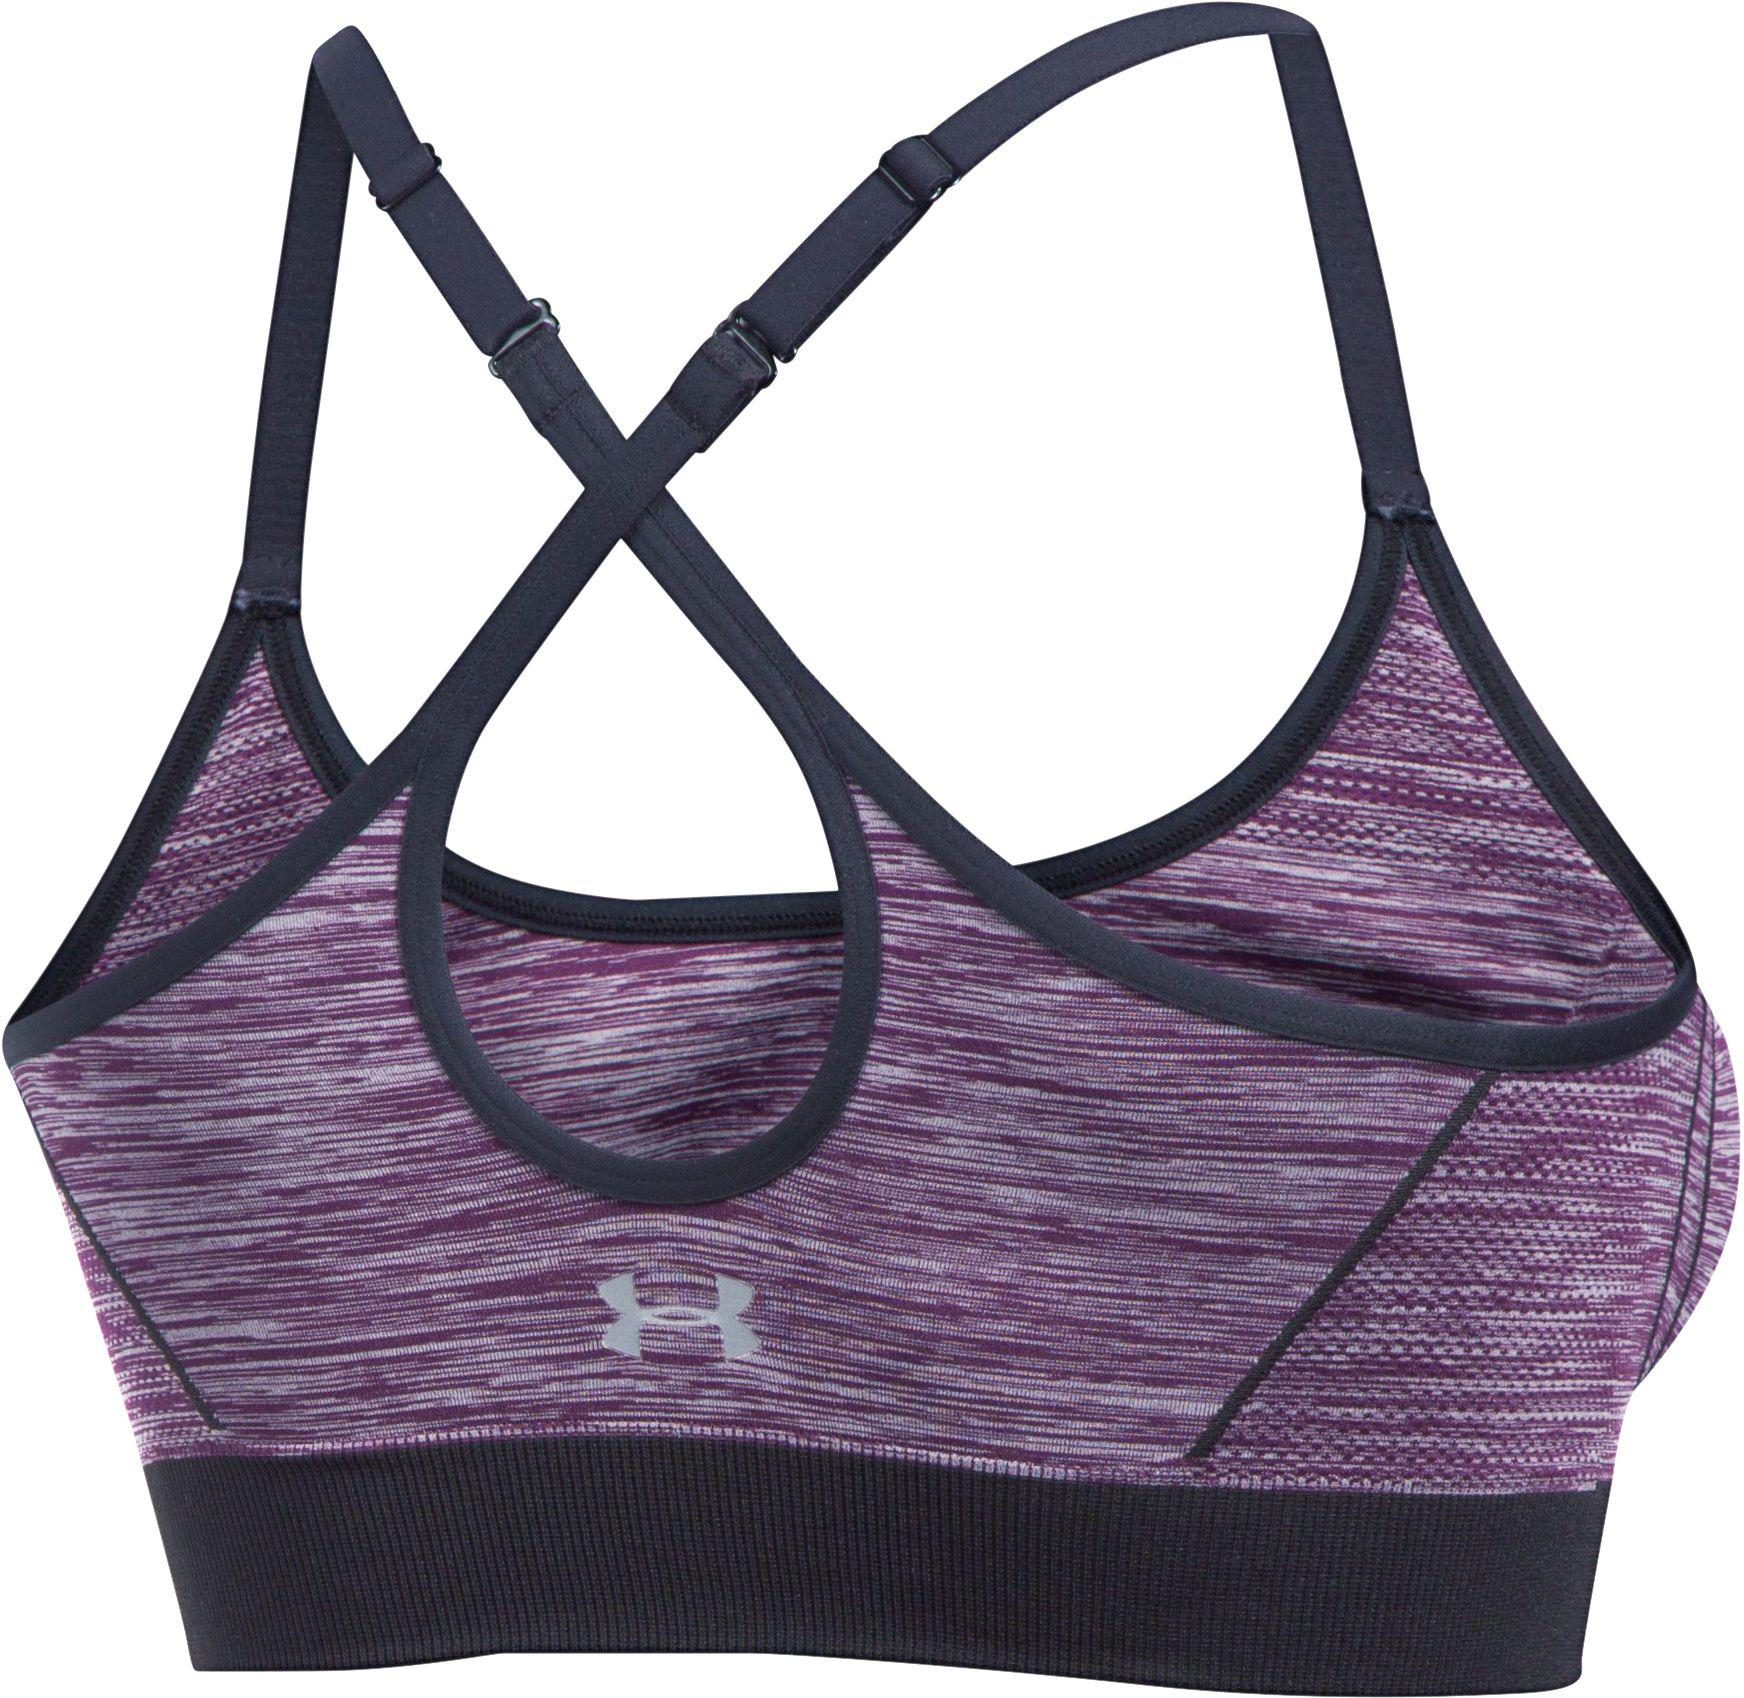 6da2938611b16 Lyst - Under Armour Threadborne Seamless Low Pop Sports Bra